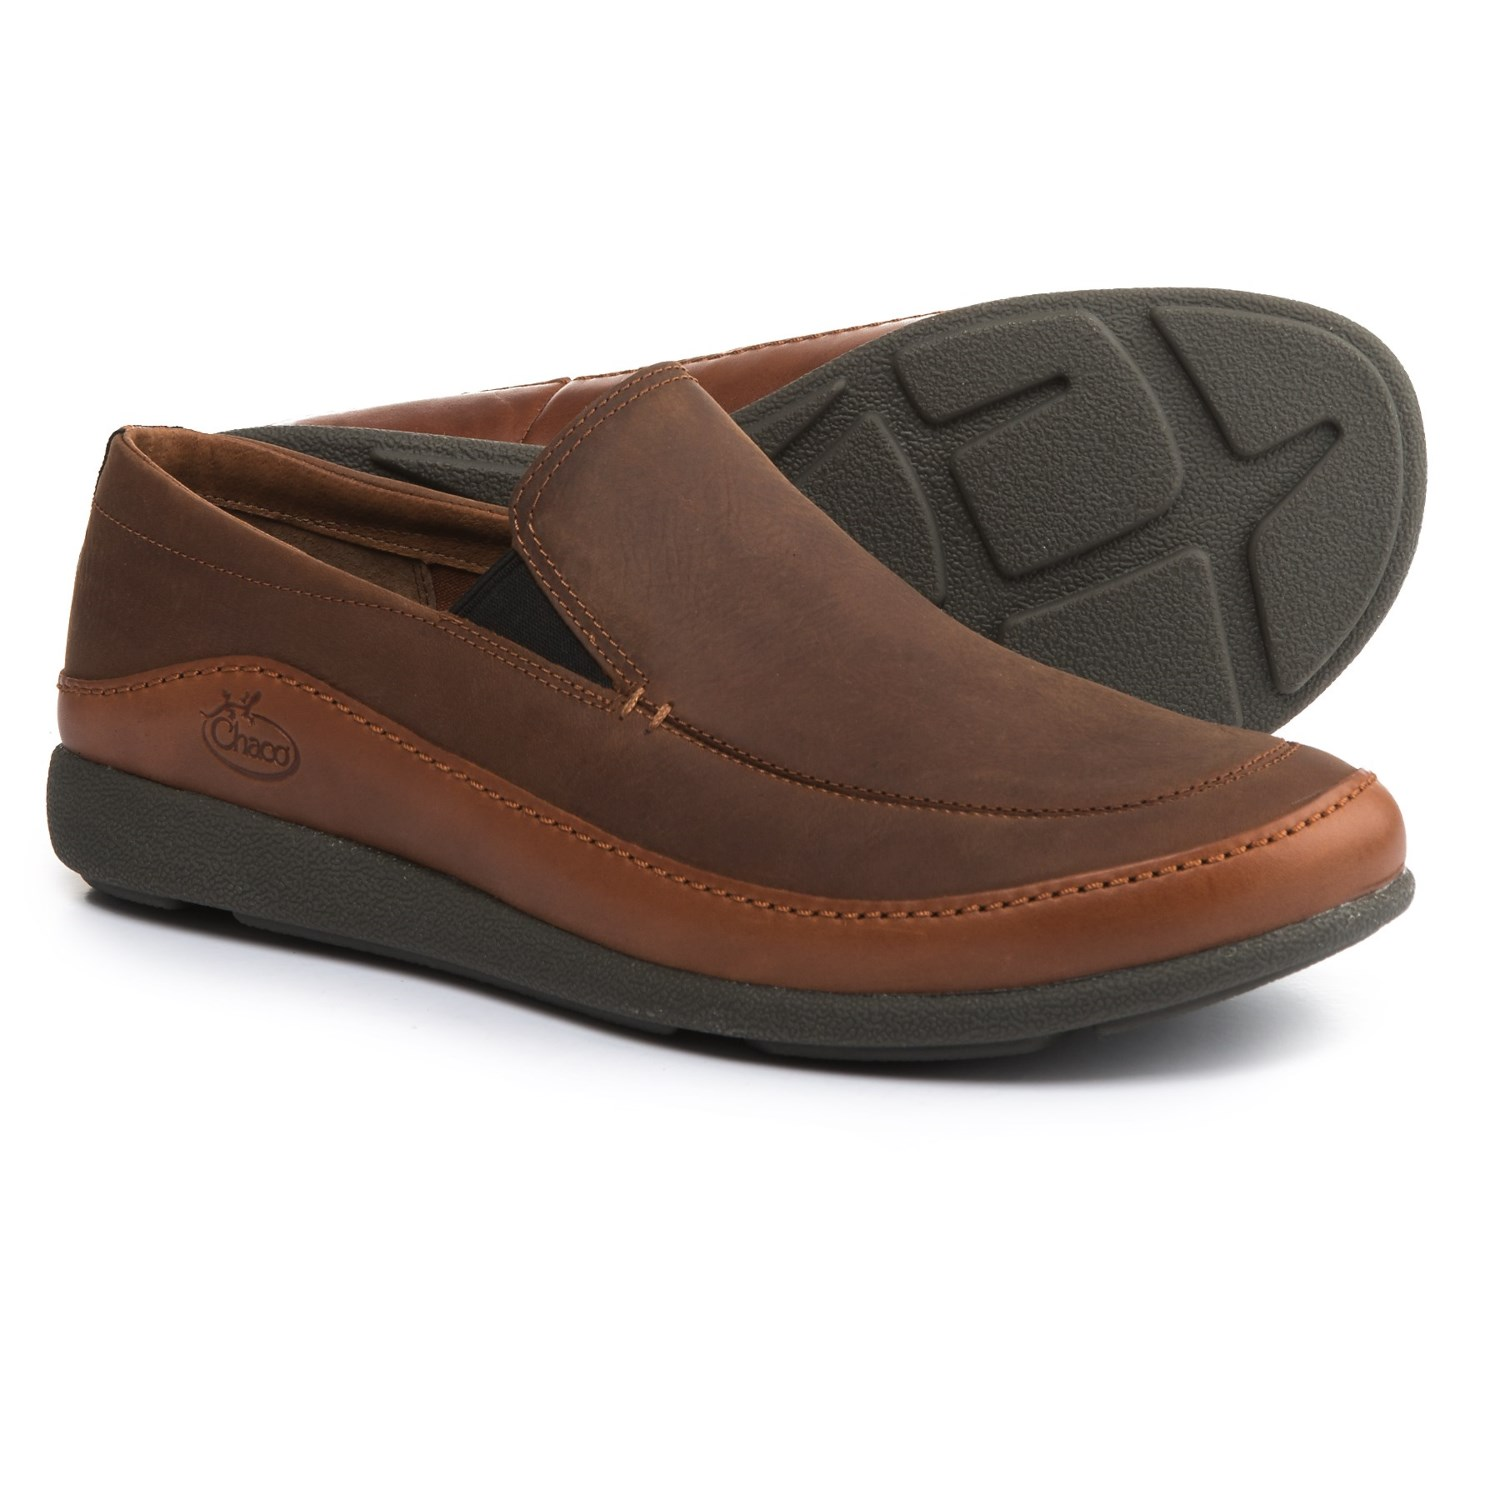 a72f8d62e7c Chaco montrose loafers leather slip ons for men in rust jpg 1500x1500 Chaco  shoes